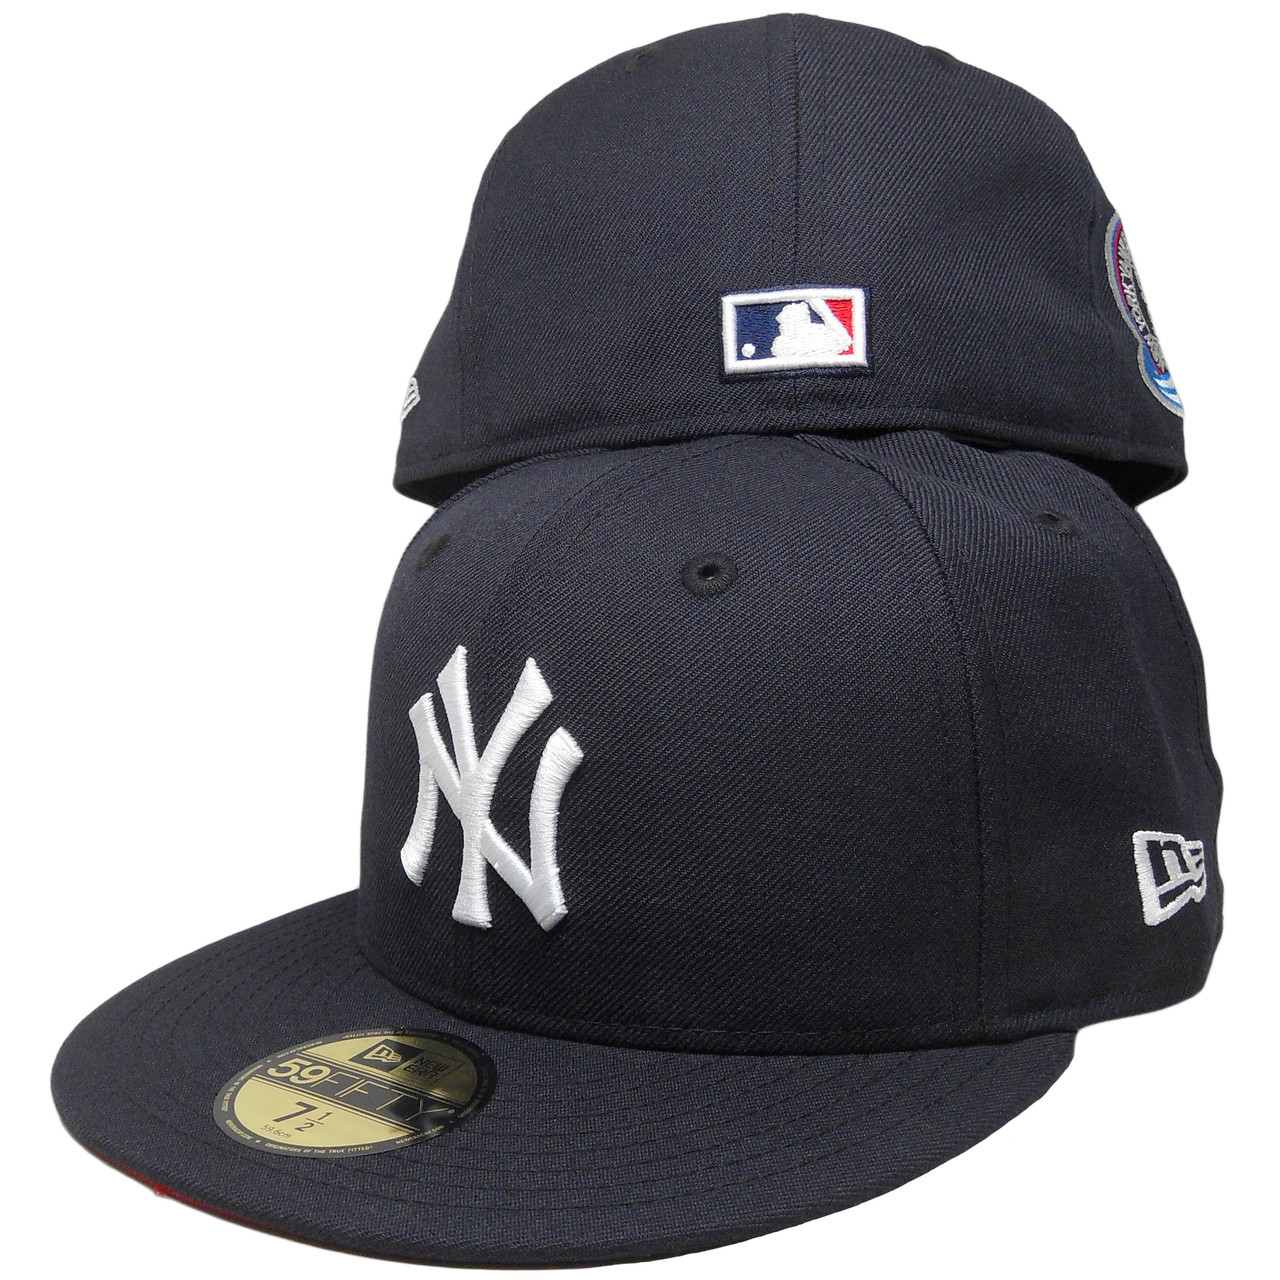 buy online 84aae 40512 New York Yankees New Era Custom Subway Series Patch Fitted - Navy, White,  Red - ECapsUnlimited.com